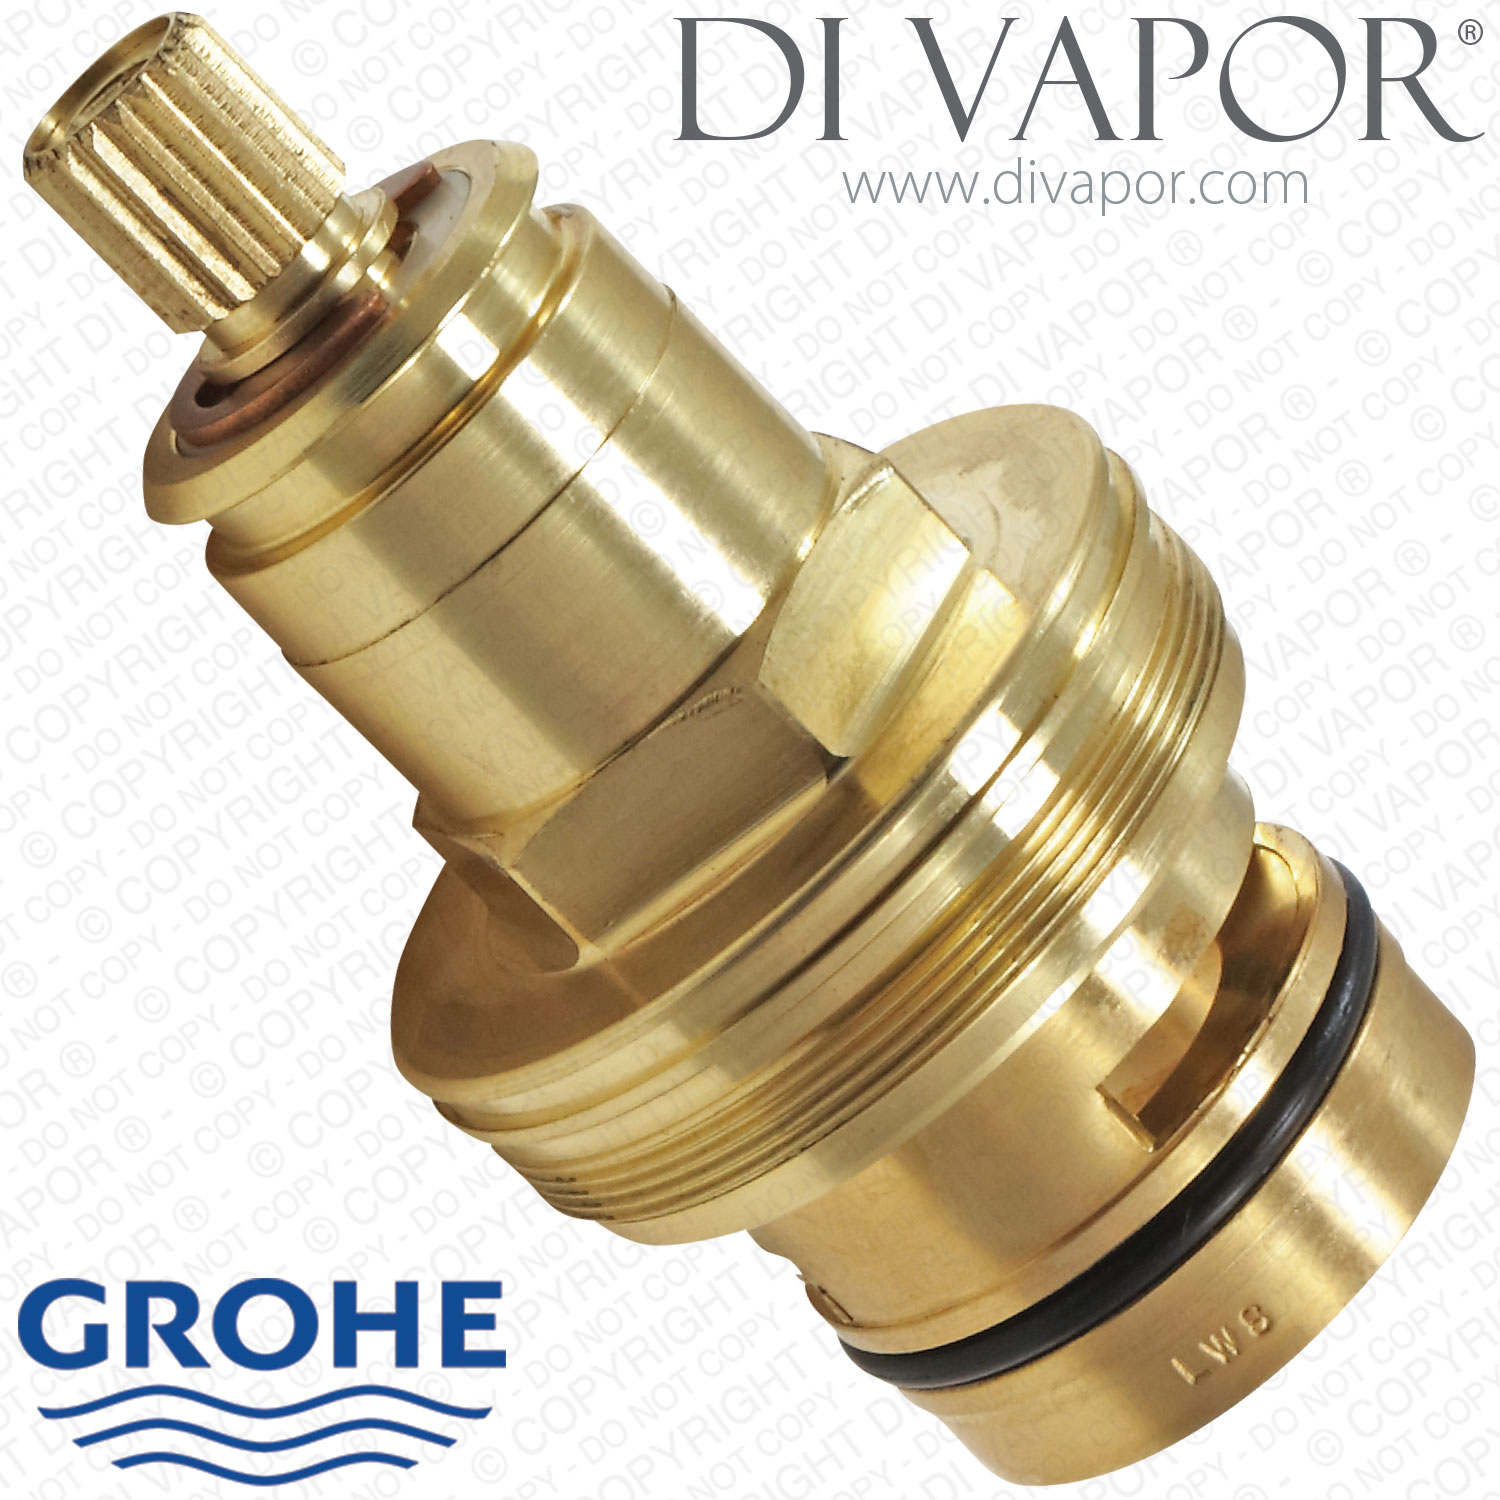 grohe 47600000 thermostatic cartridge with wax thermostat element for